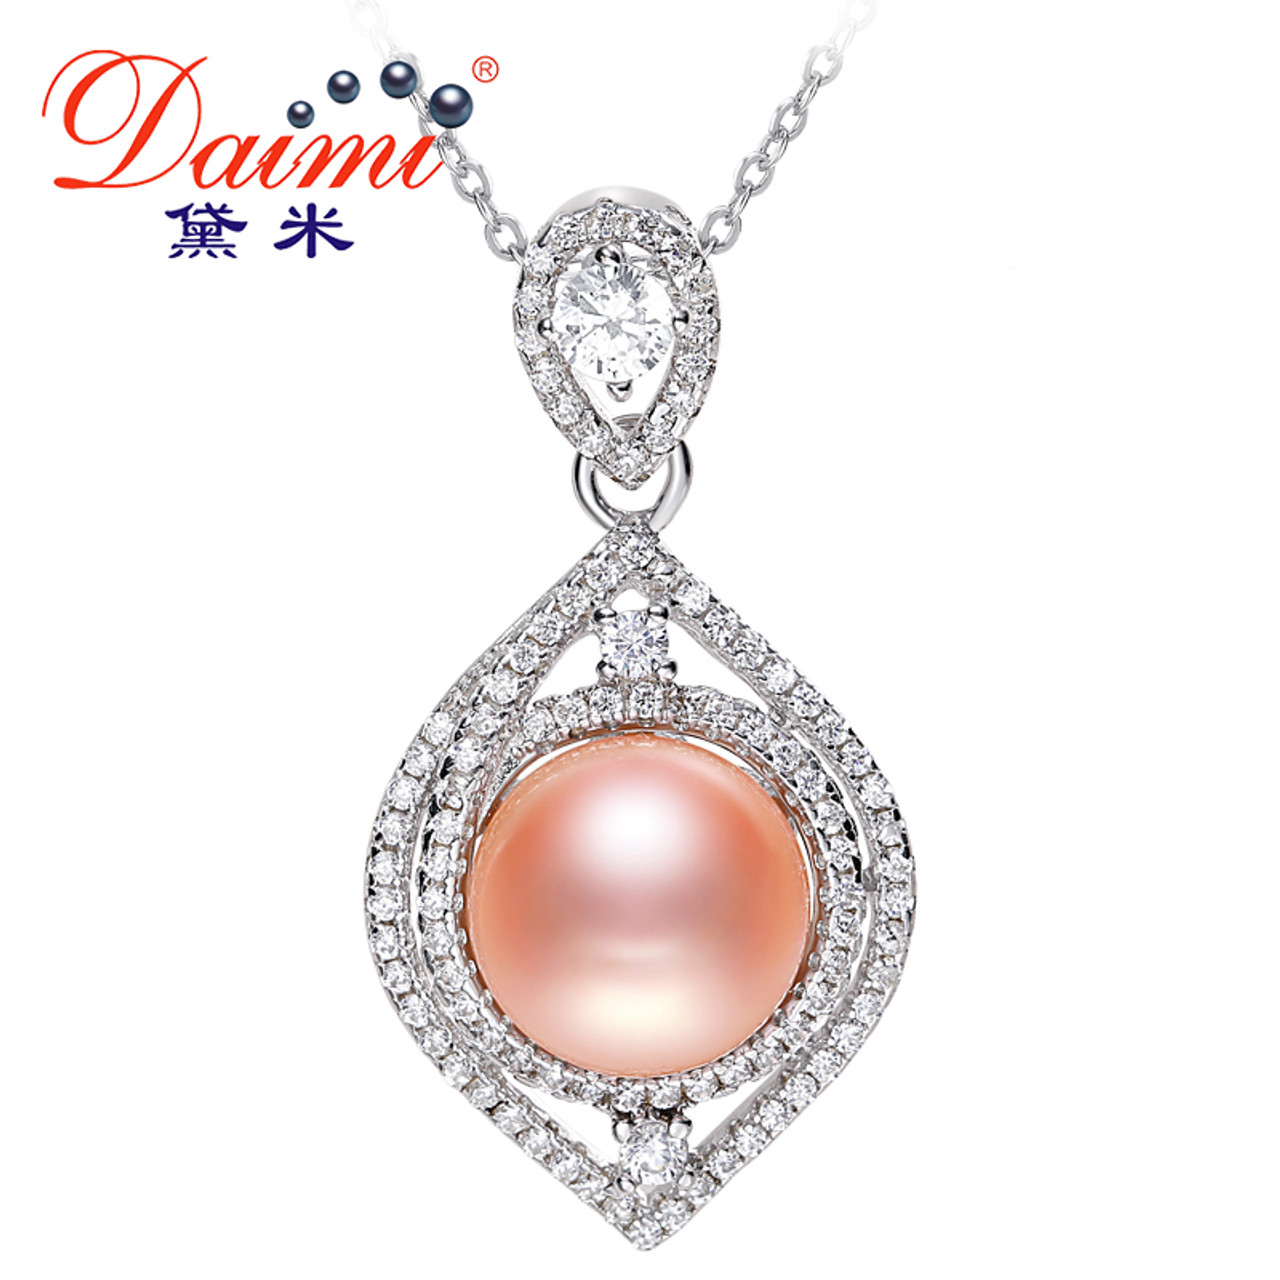 Daimi shiny crystal pink pearl pendant 95 10mm big freshwater pearl daimi shiny crystal pink pearl pendant 95 10mm big freshwater pearl necklace 925 sterling silver aloadofball Choice Image